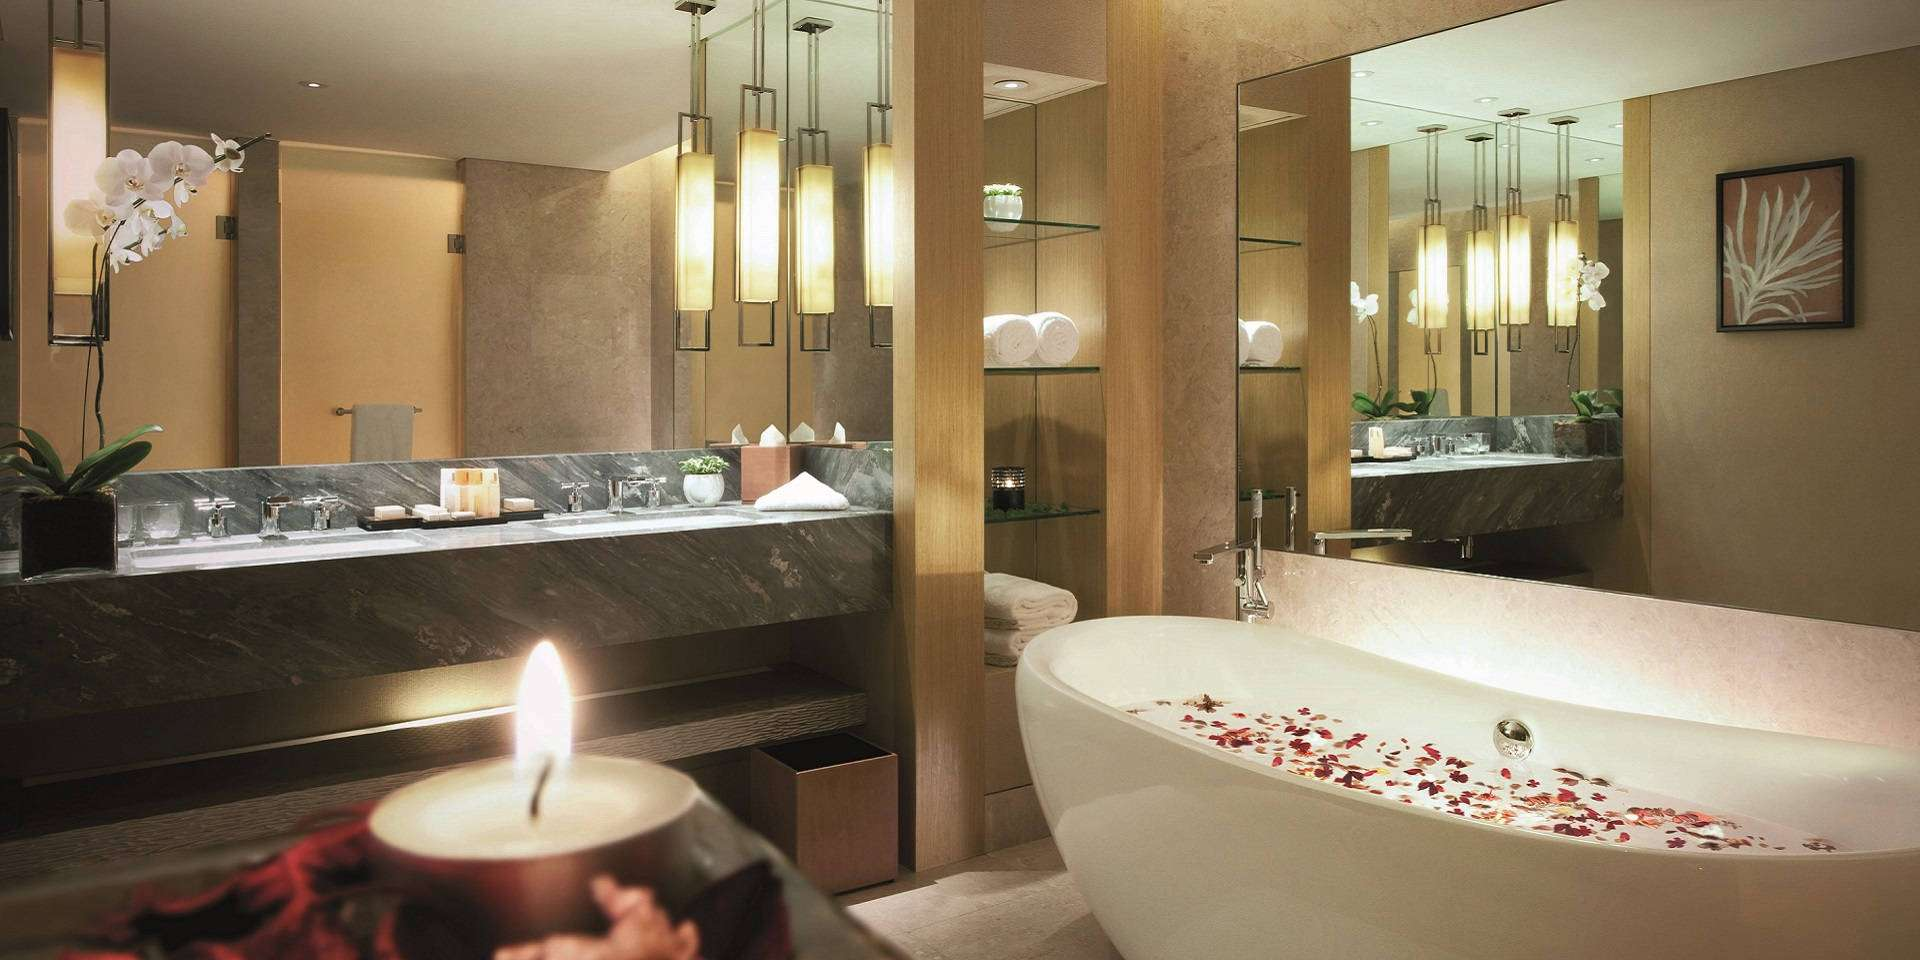 Premier Room Bathroom at Marina Bay SandsPremier Room in Marina Bay Sands   Singapore Hotel. Red Light In Bathroom Hotel. Home Design Ideas